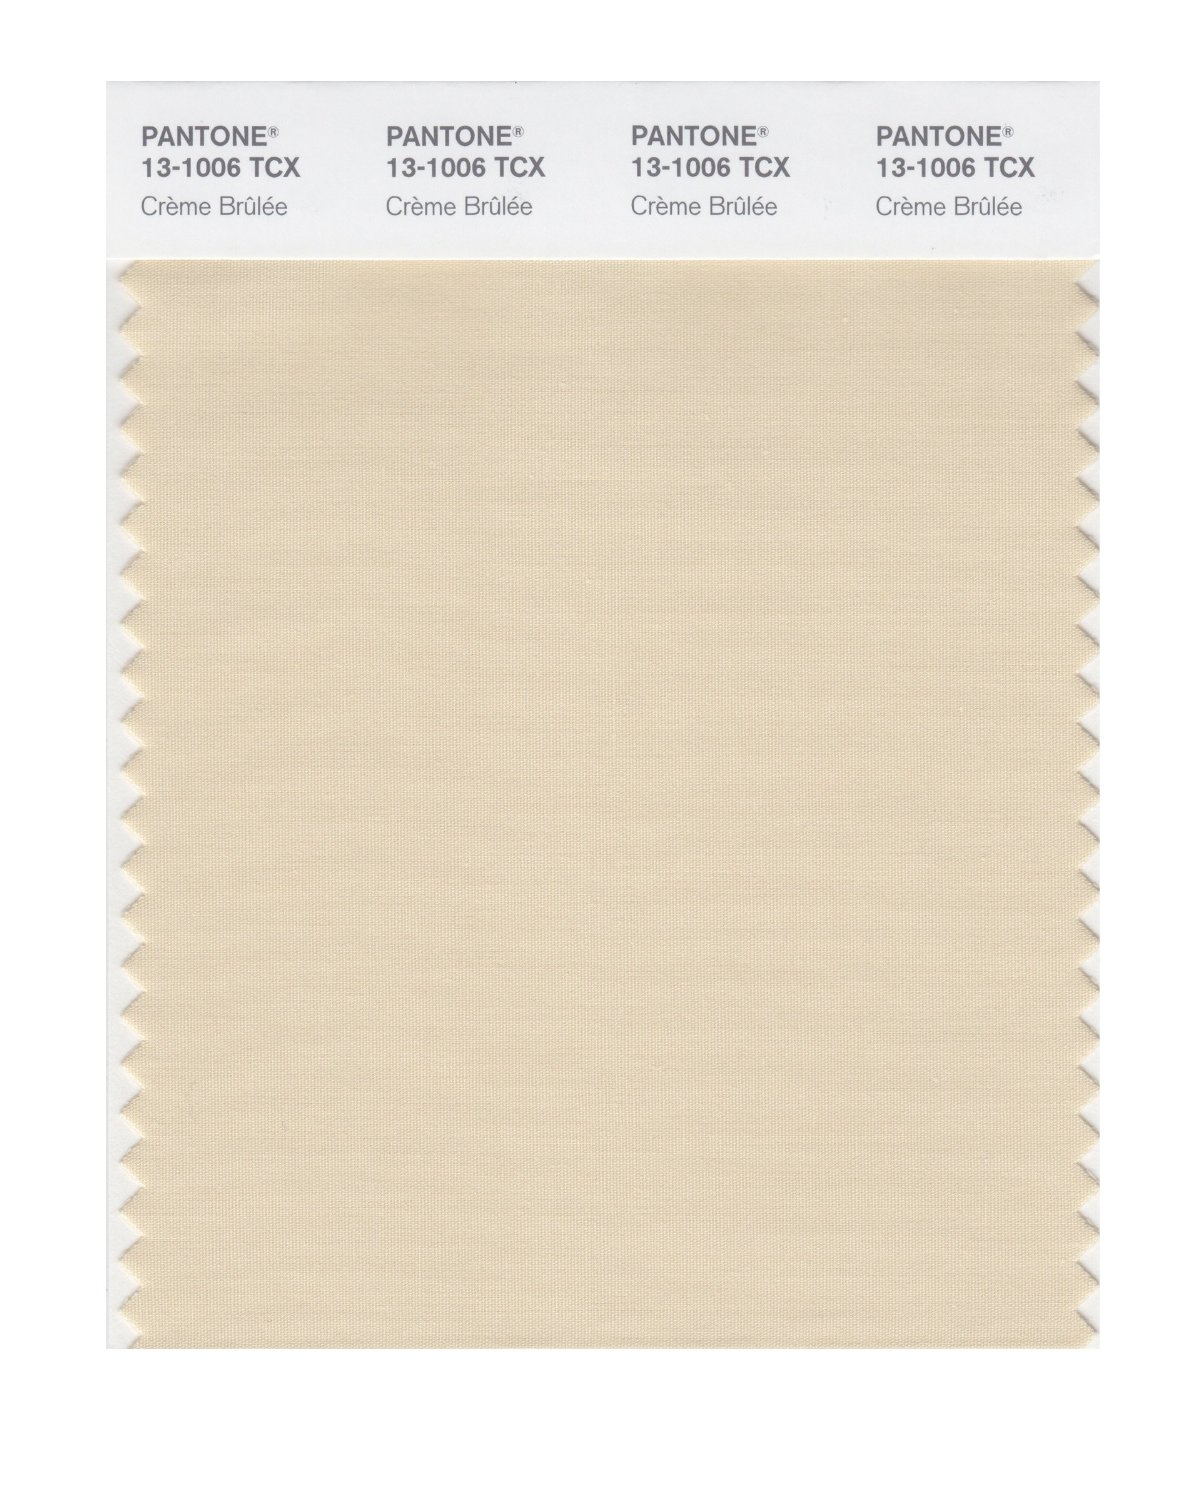 Pantone Smart Swatch 13-1006 Creme Brulee